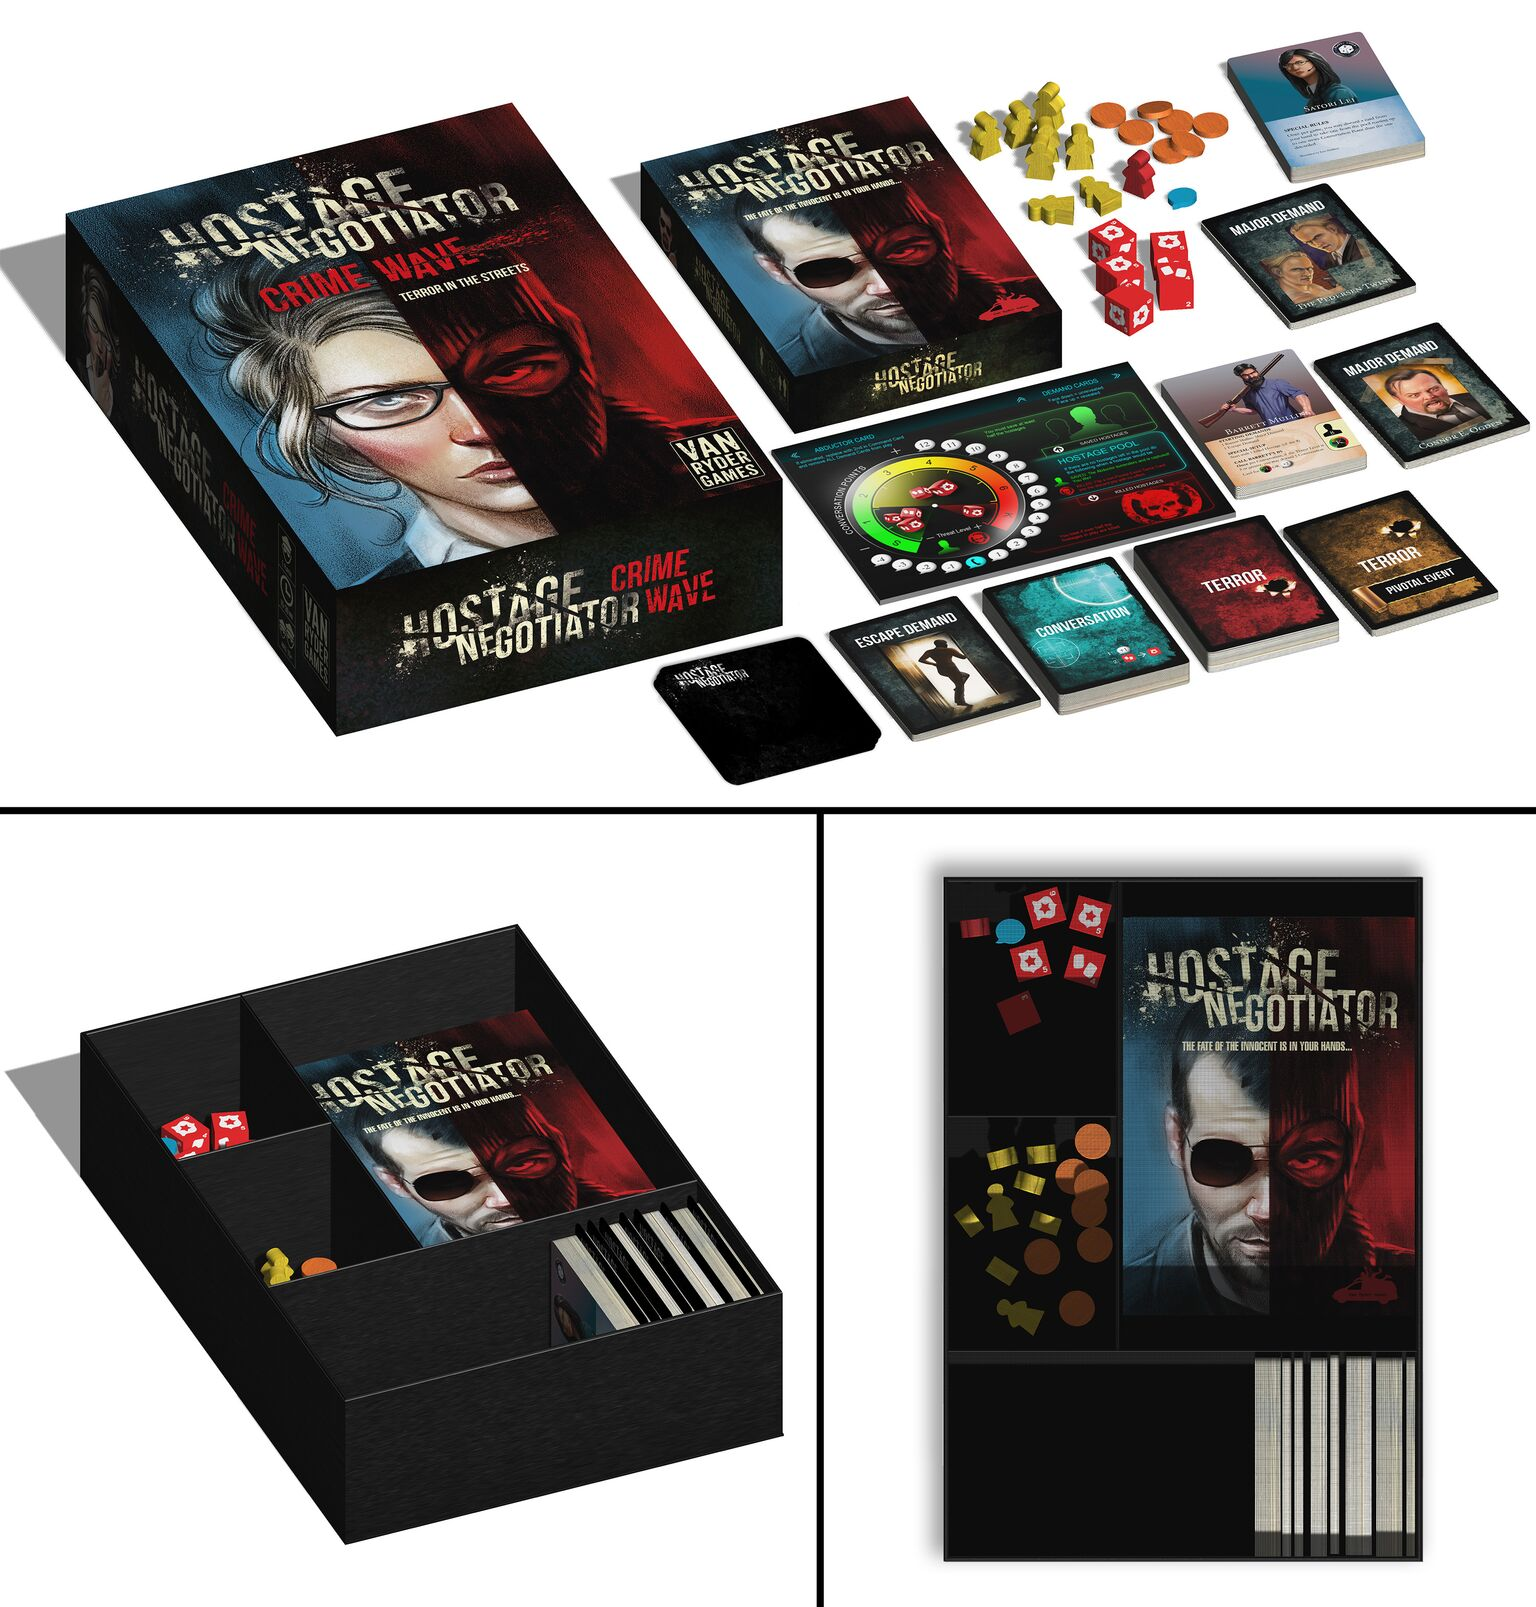 Room to Grow - The larger box of Hostage Negotiator: Crime Wave can easily fit all released content, including the entire original game box!Plus, there's room for more, and you'll still have the portability for taking the game with you on trips.